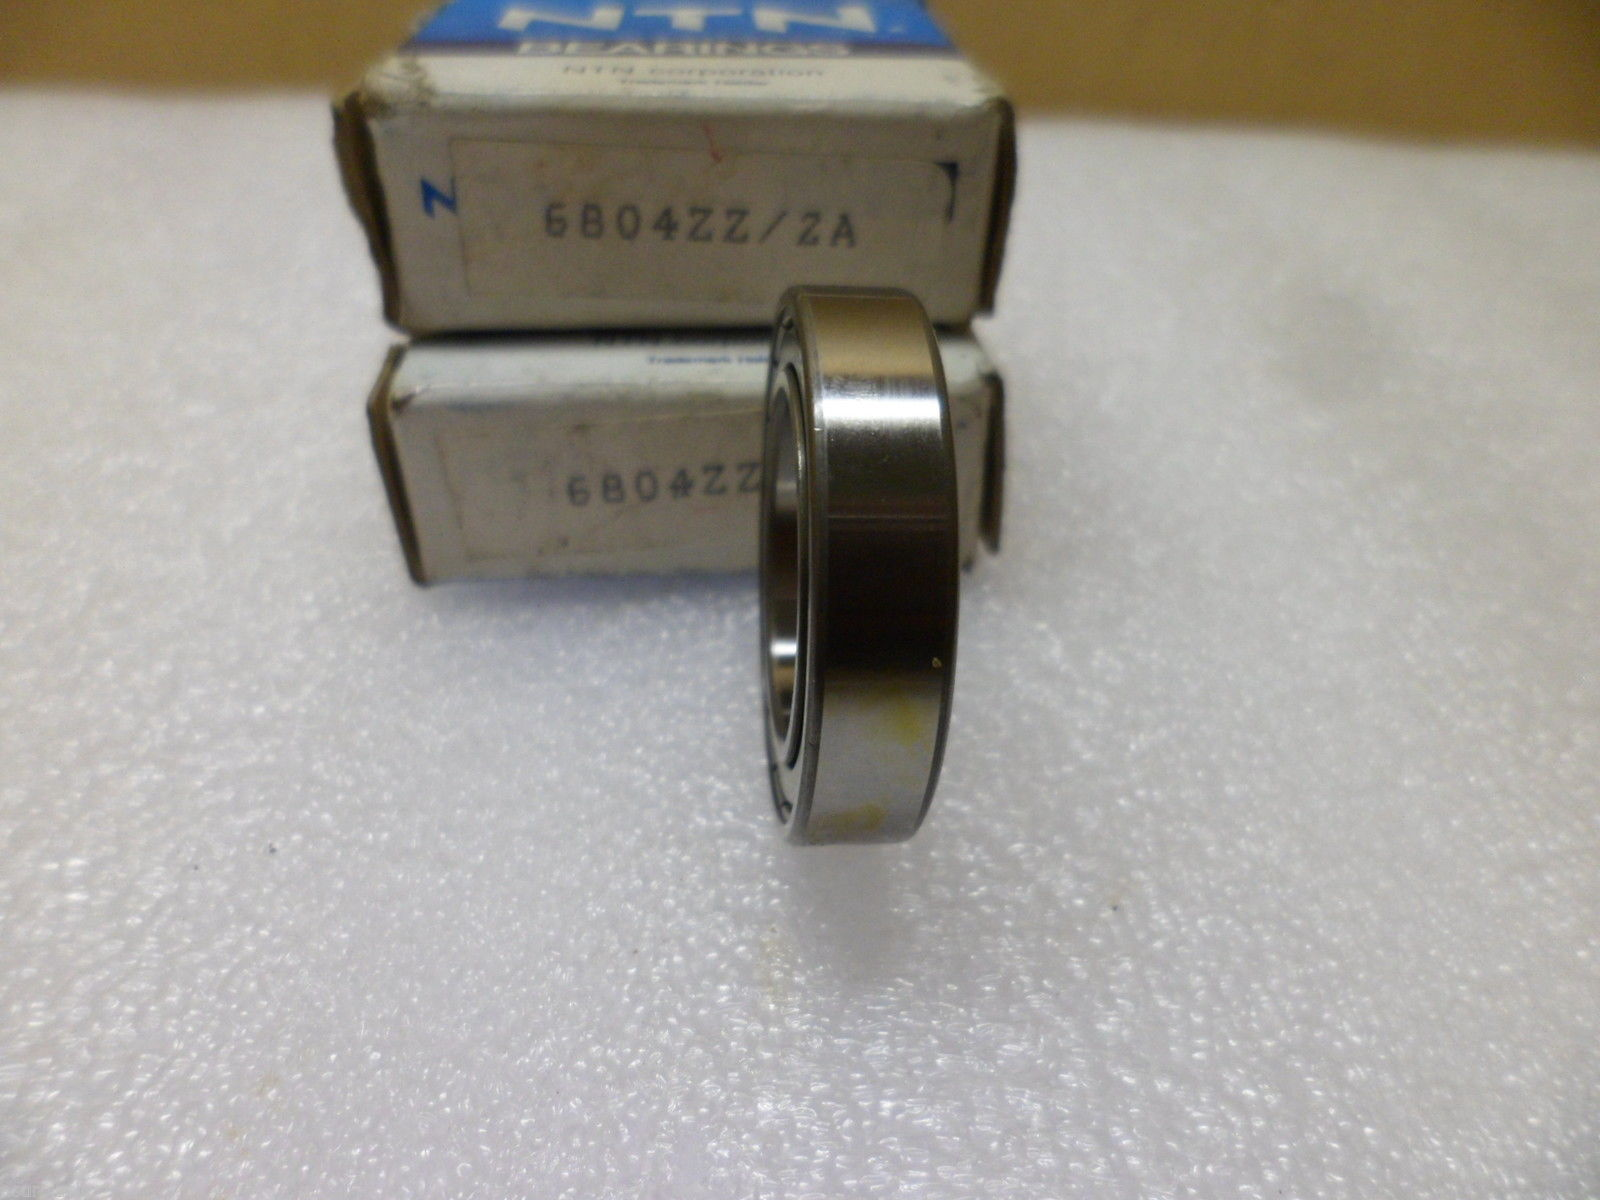 high temperature NTN 6804ZZ/2A DEEP GROOVE BALL BEARING DOUBLE SHIELDED LOT OF 2 BEARINGS  NOS